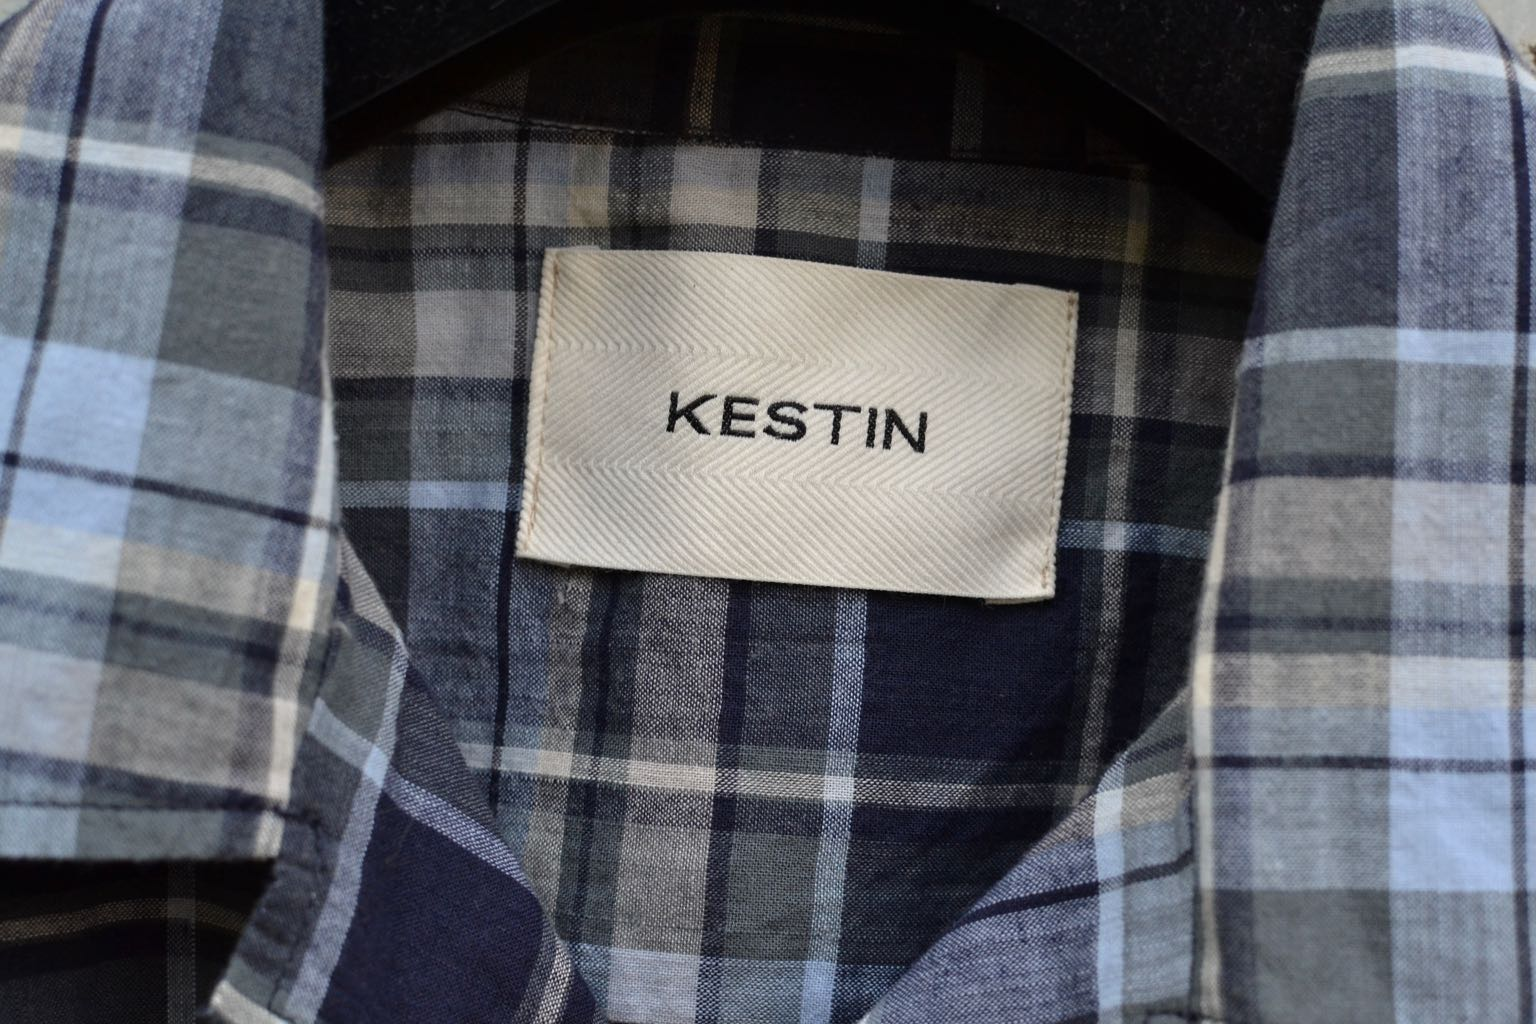 Kestin-hare-Tain shirt in indigo - blue slate check - 1